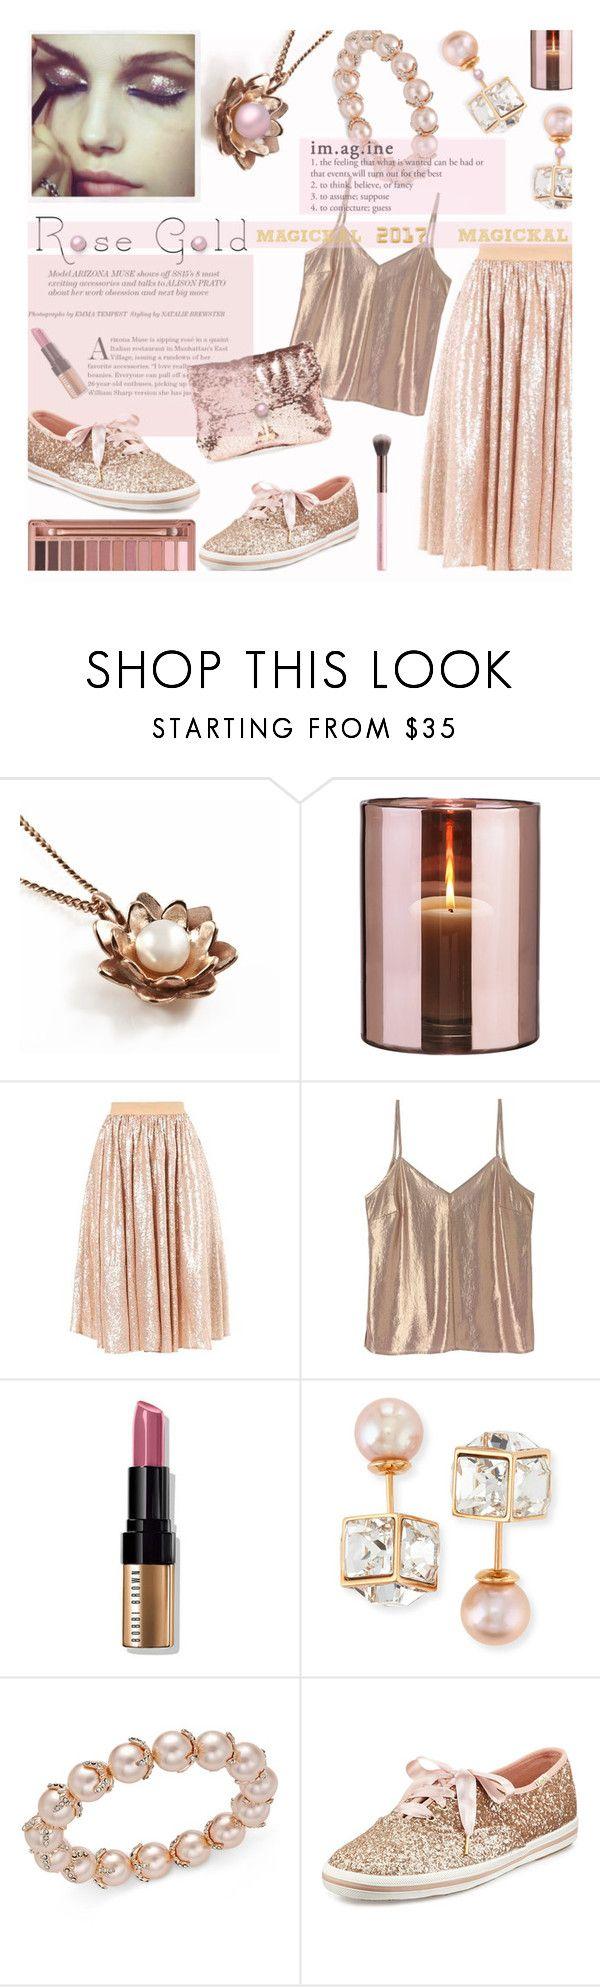 """🎀 #615 ✨😊✨  Magickal 2017      #rosegold"" by wonderful-paradisaical ❤ liked on Polyvore featuring Vicky Davies, Urban Decay, Skogsberg & Smart, A Day in a Life, Bobbi Brown Cosmetics, Vita Fede, Charter Club and Kate Spade"